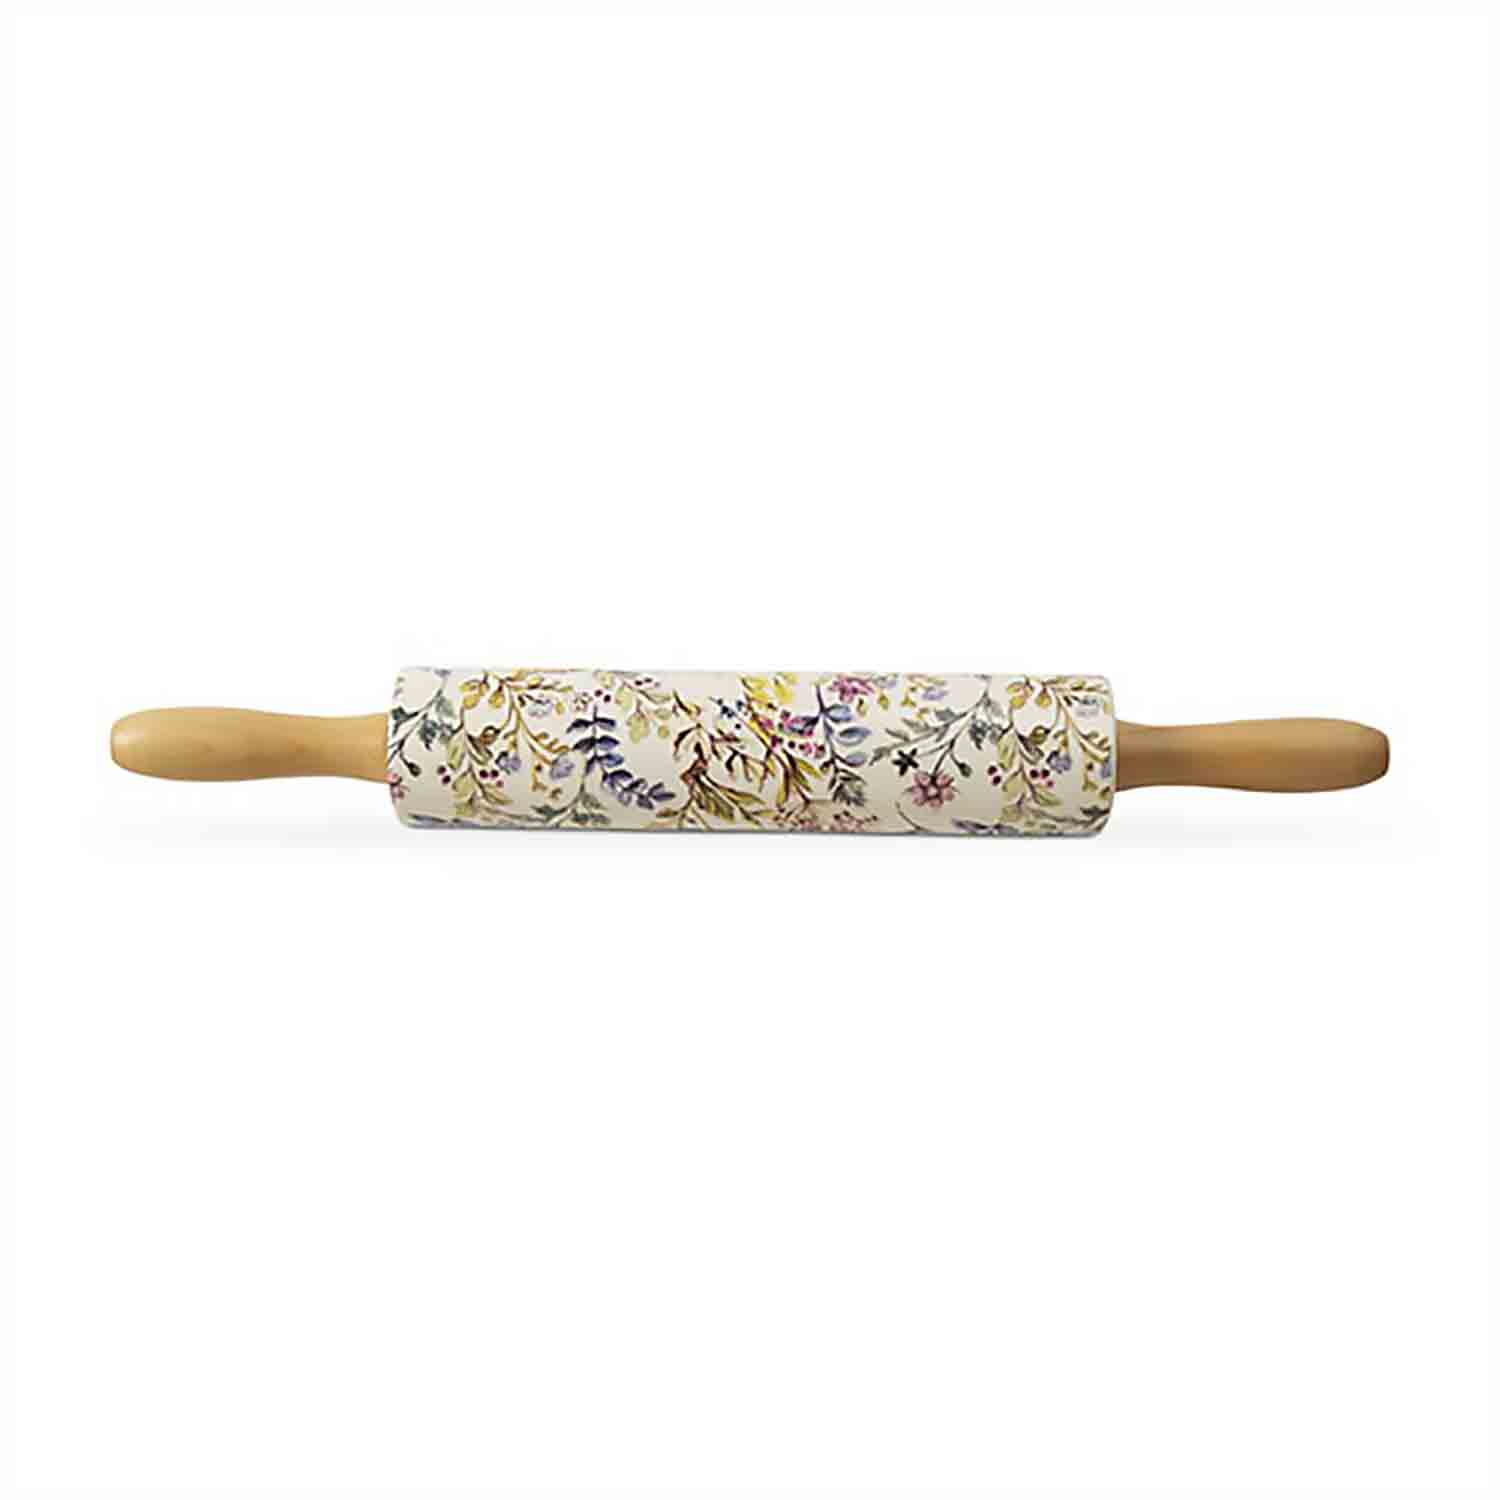 Meadow Rolling Pin